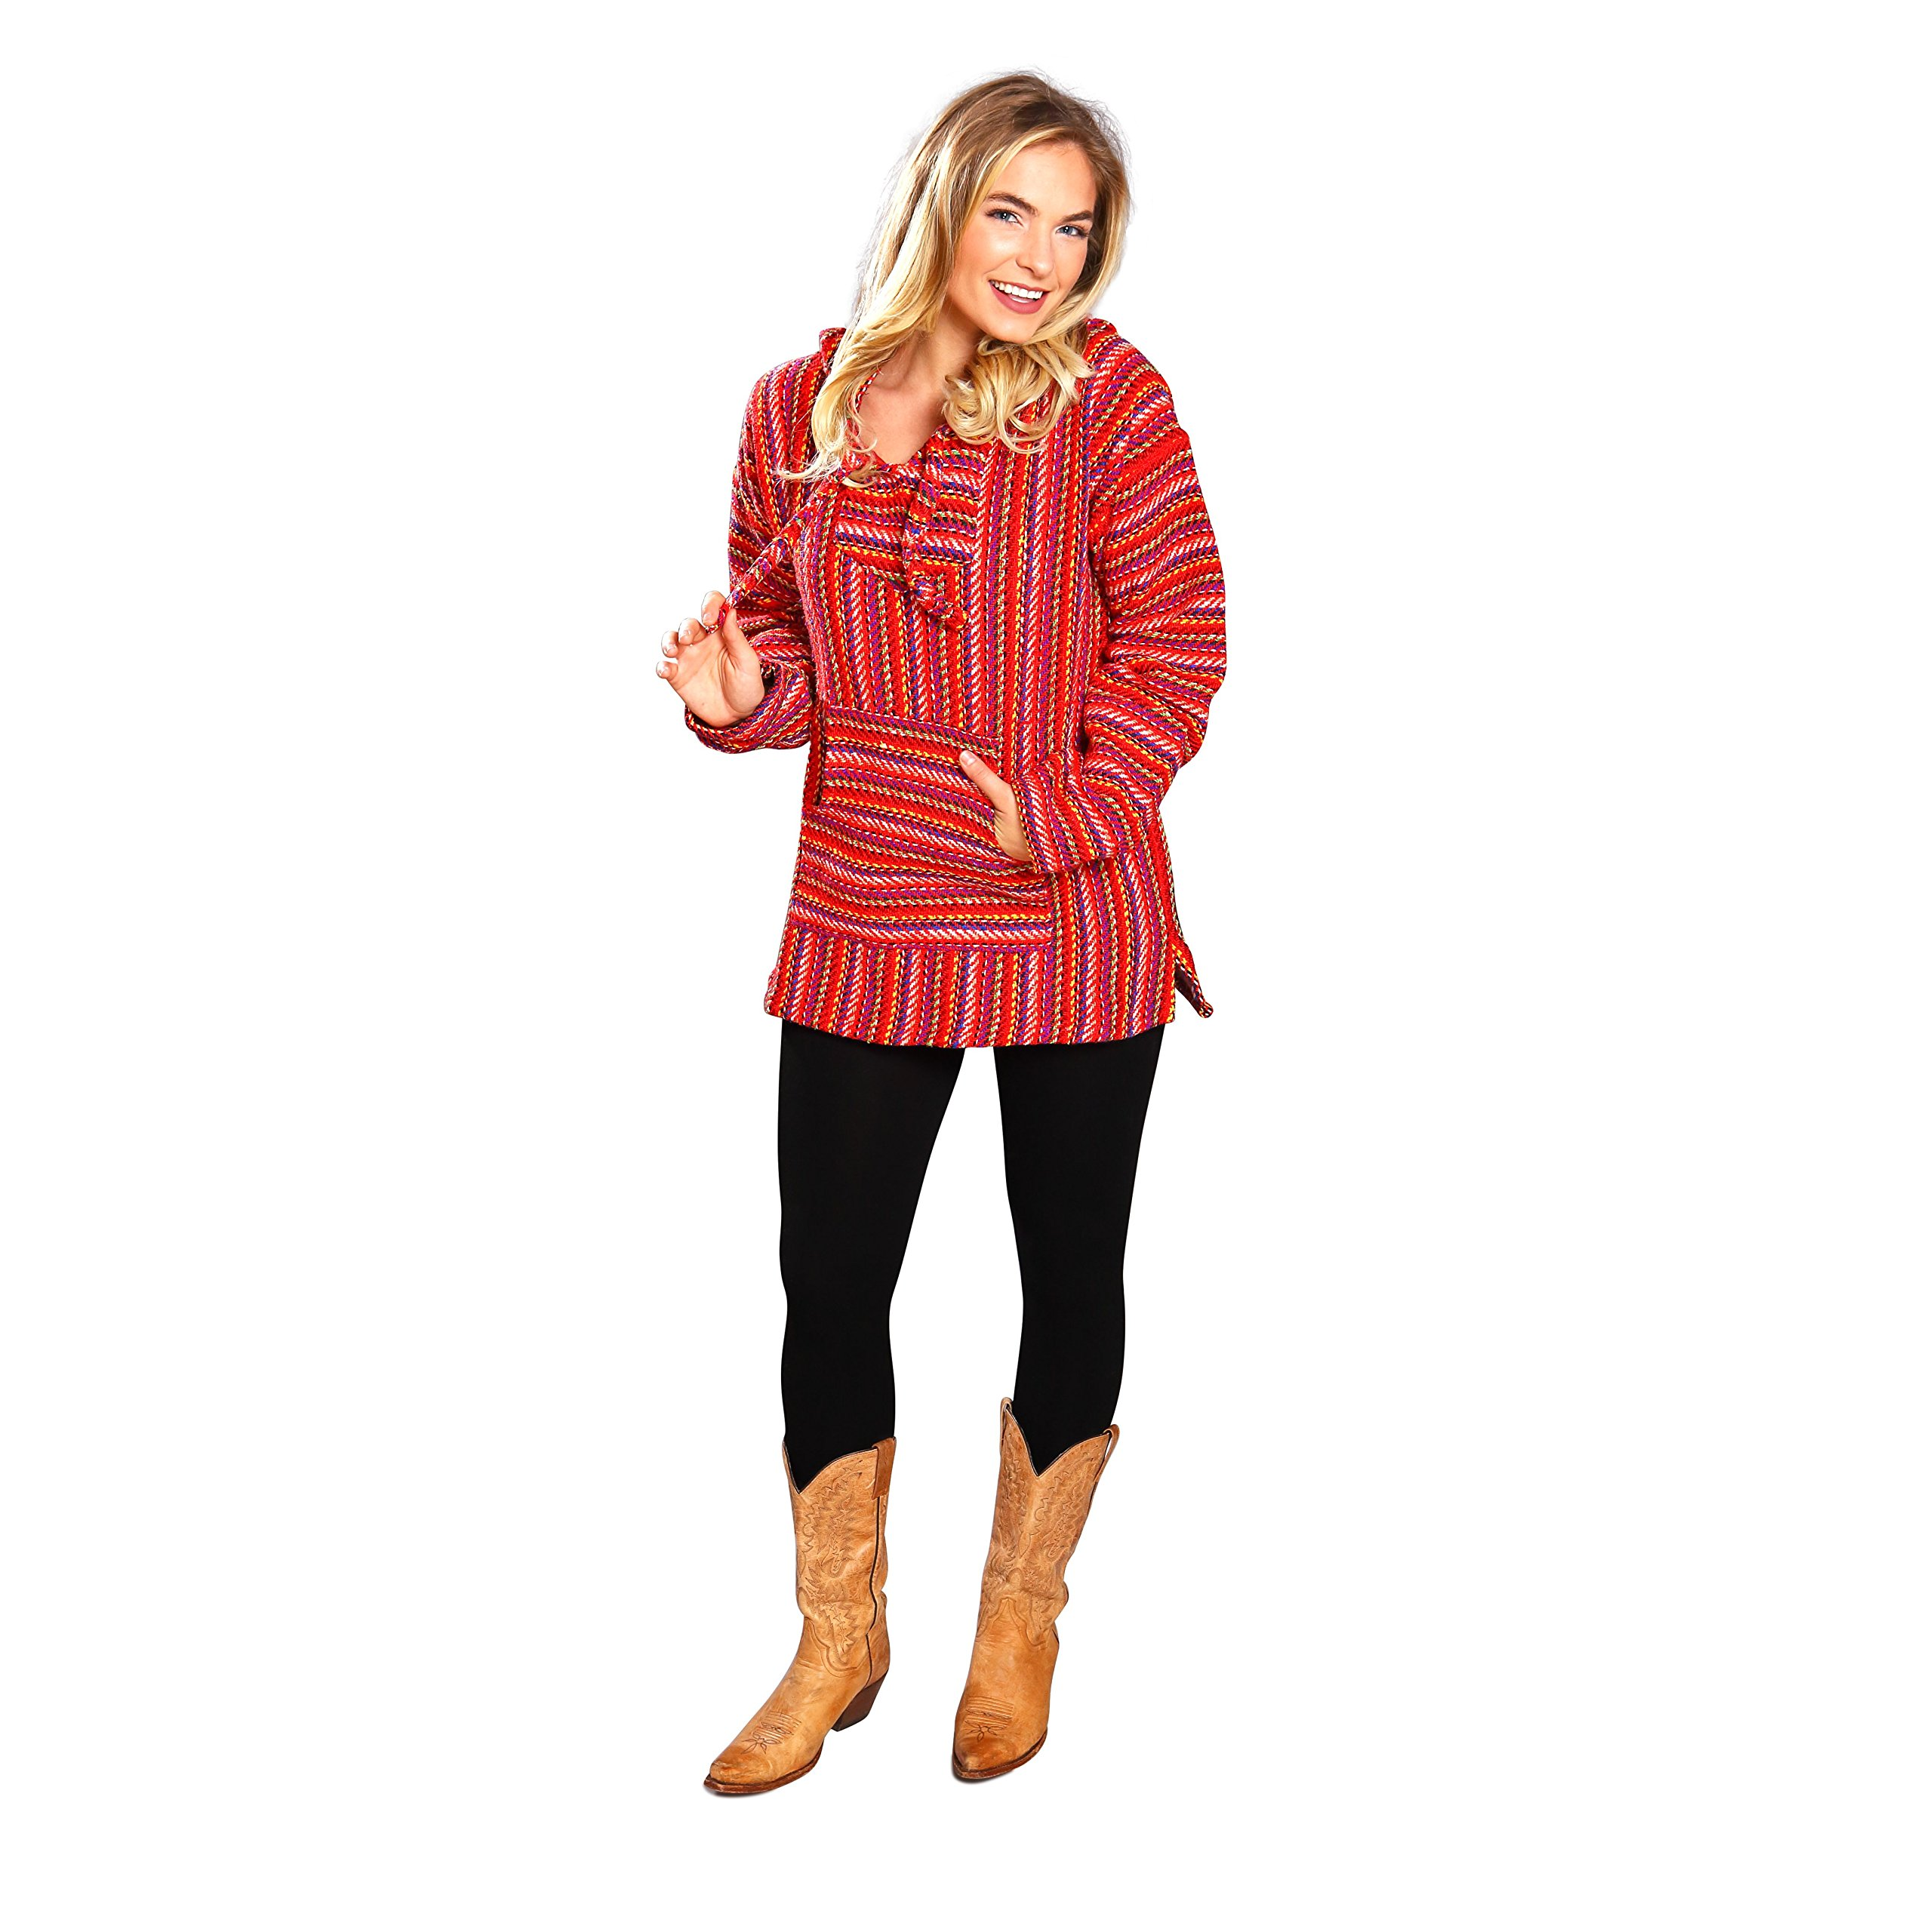 El Paso Designs Mexican Style Baja Hoodie Pullover Poncho - For Men & Women (Candy, Medium) by El Paso Designs